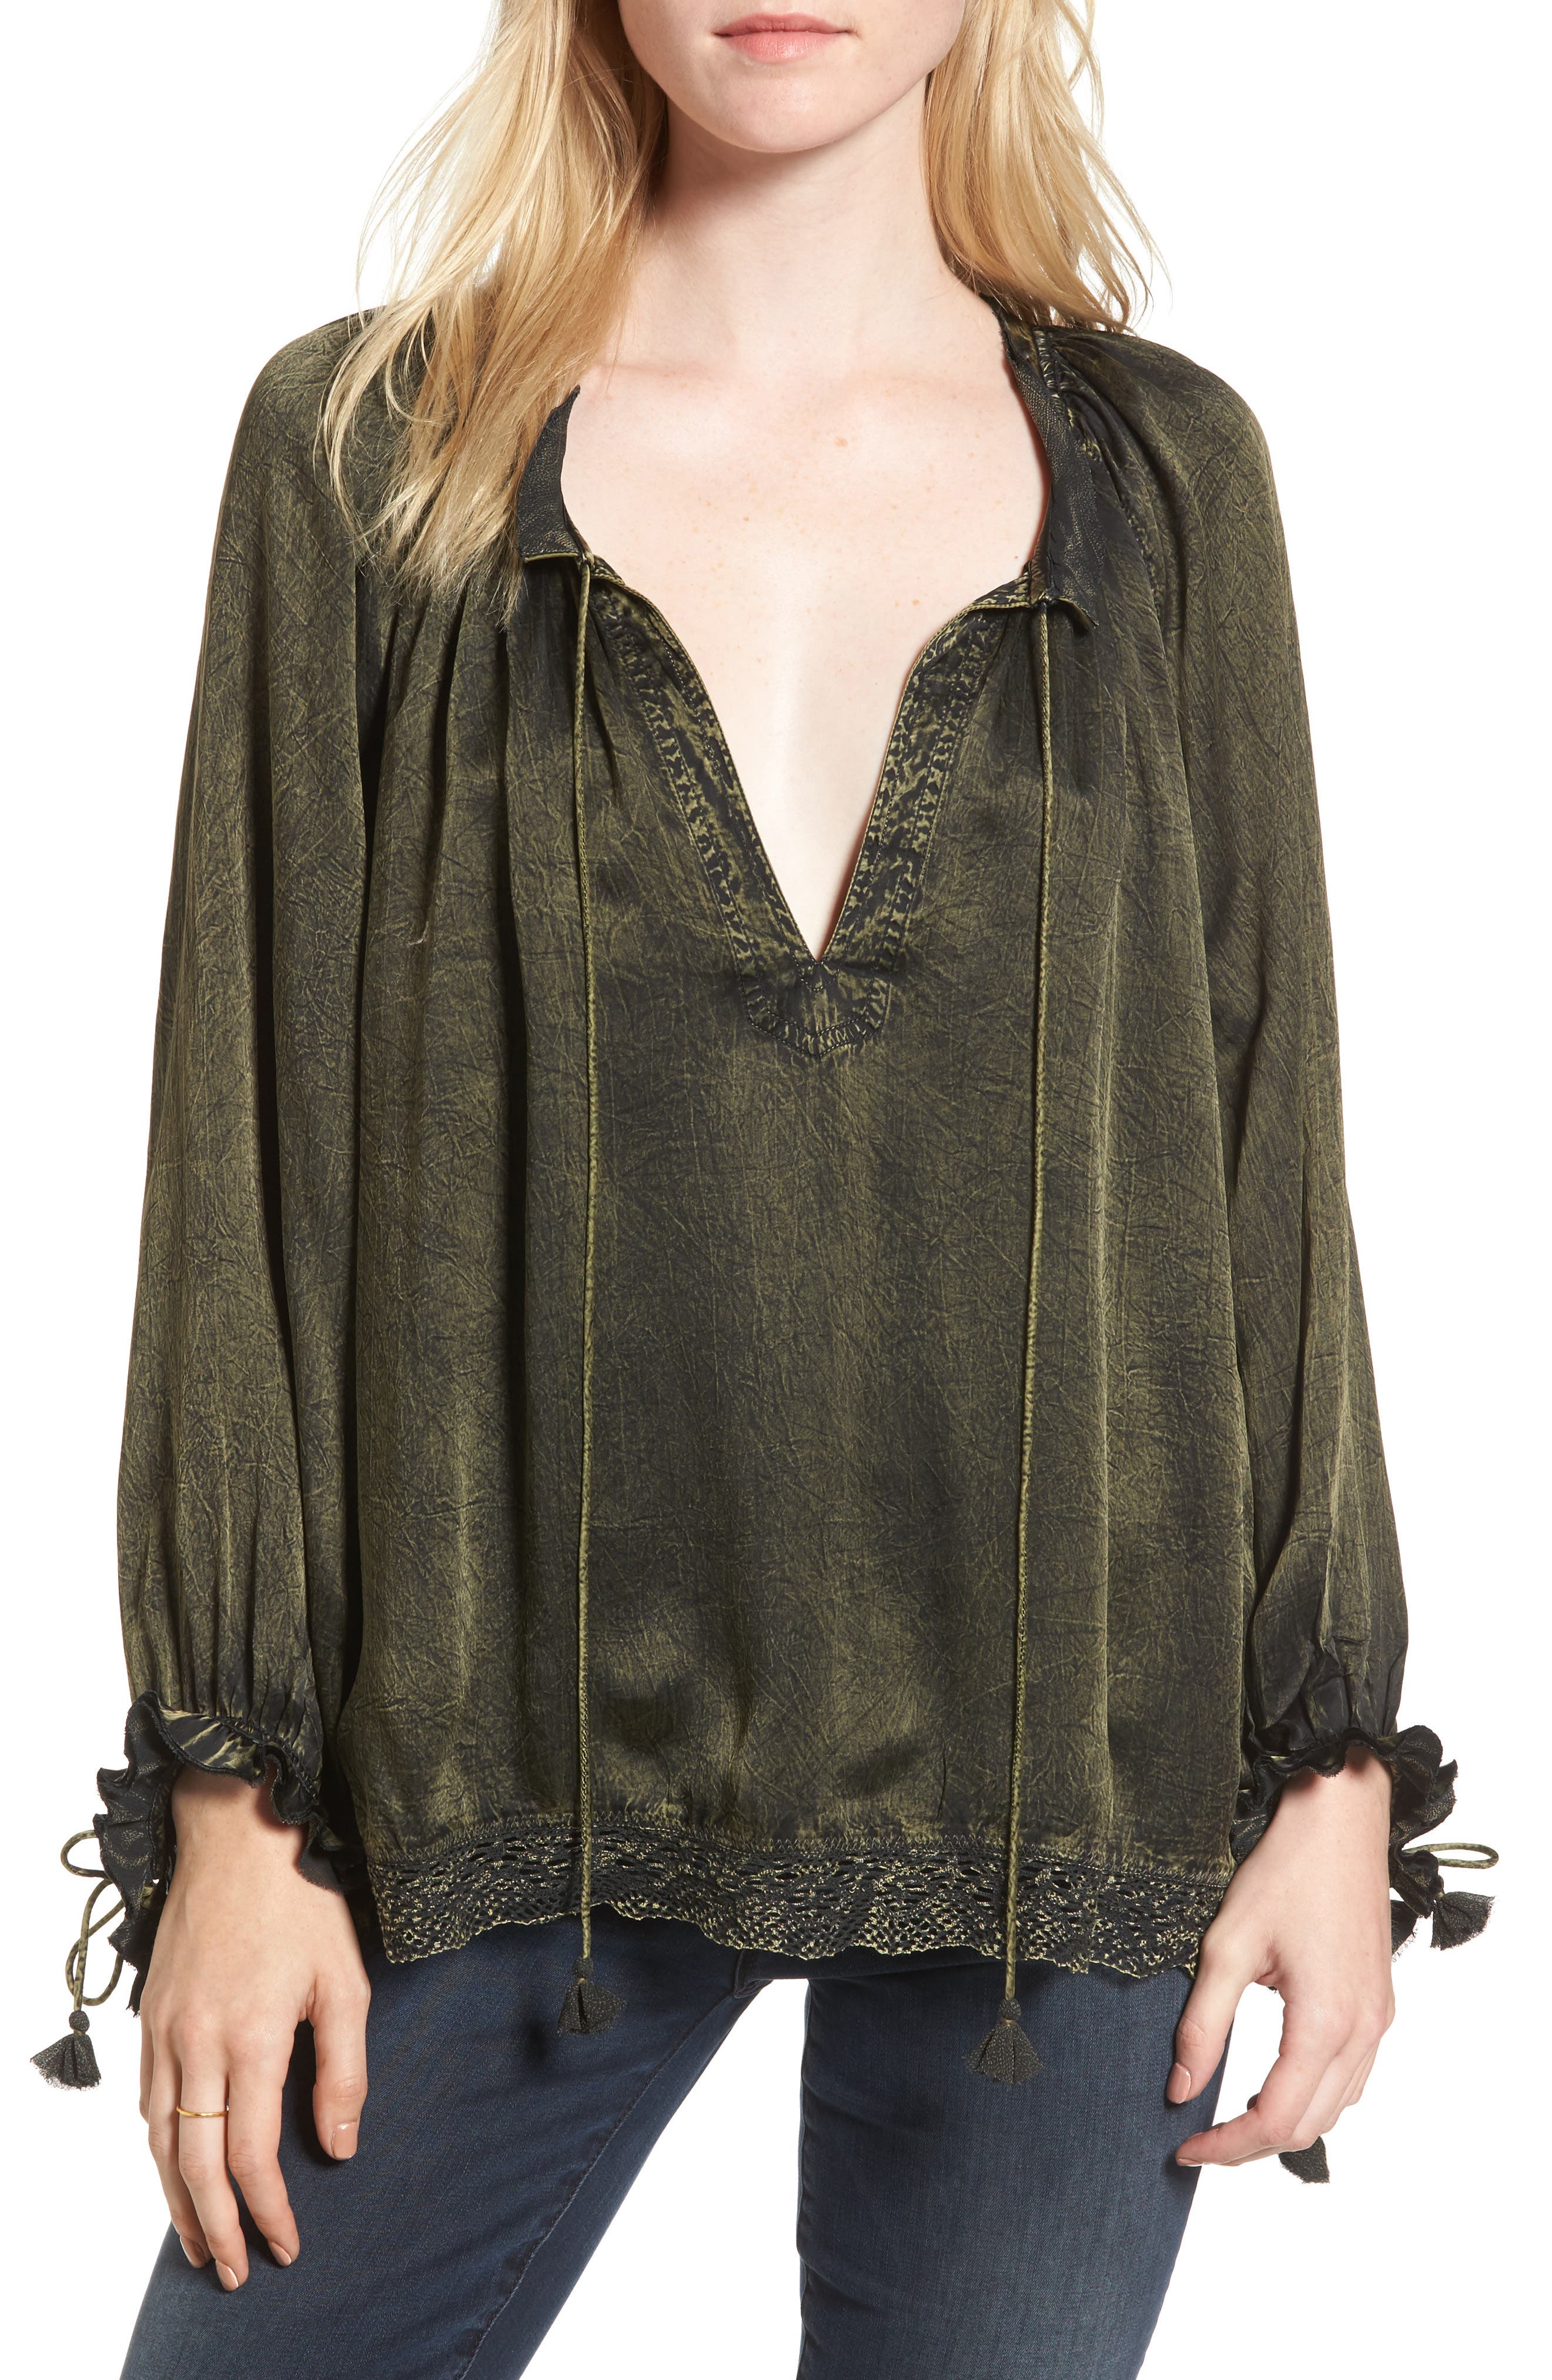 Main Image - Zadig & Voltaire Theresa Blouse